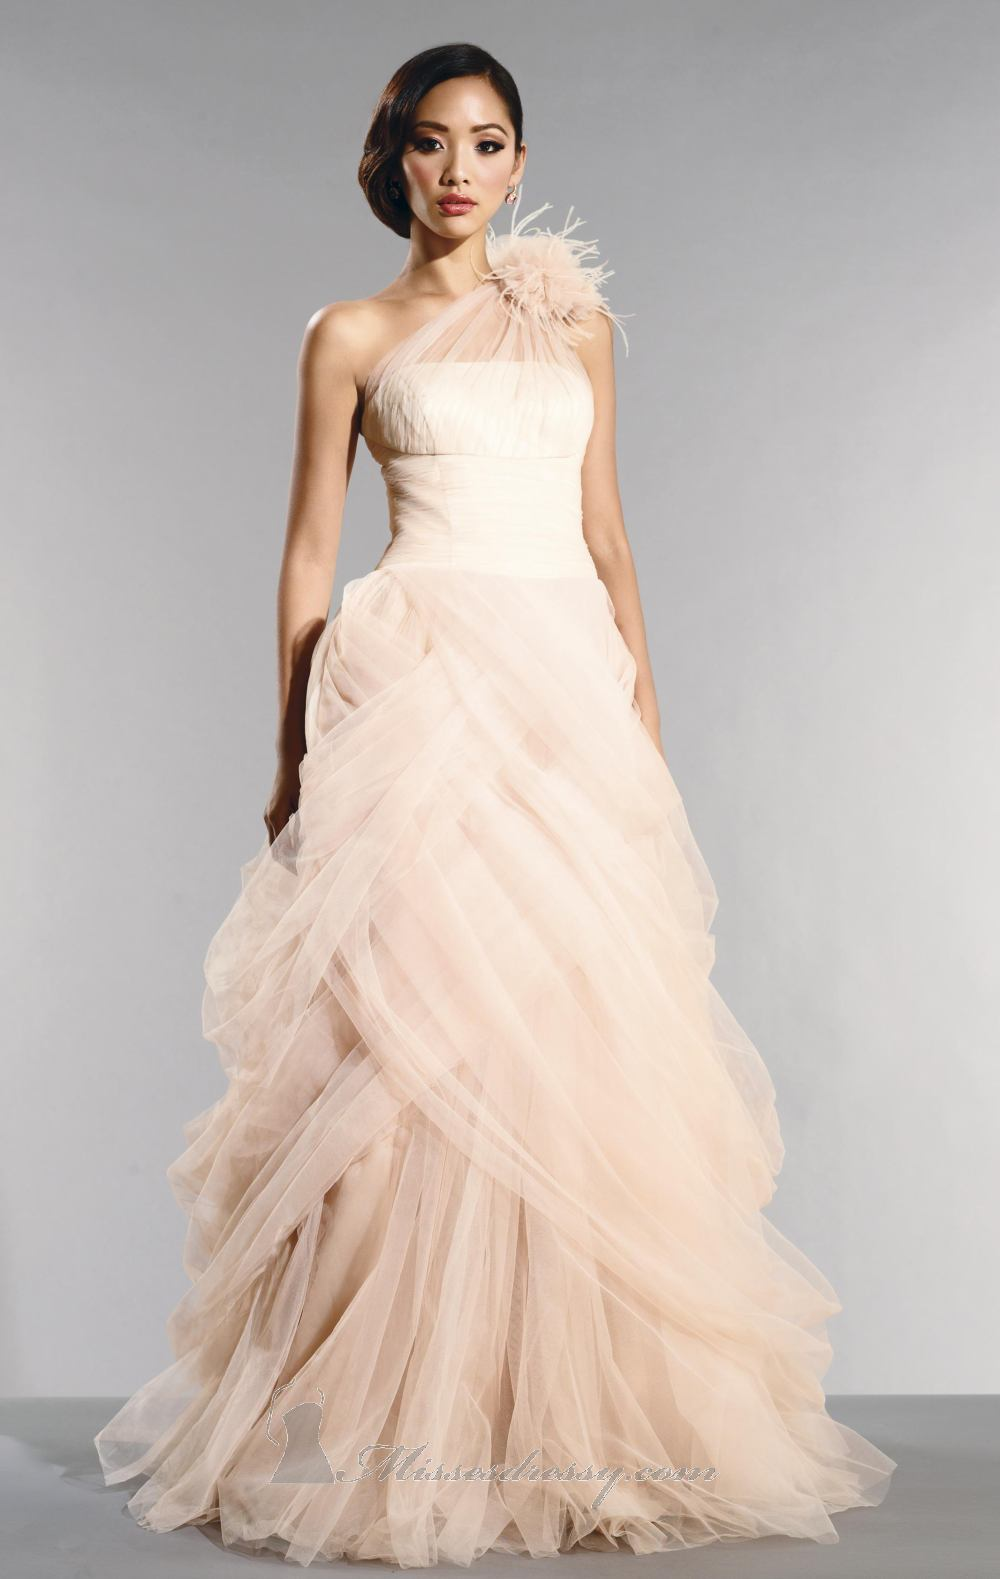 wedding dresses non traditional untraditional wedding dresses Wedding Dresses Non Traditional 23